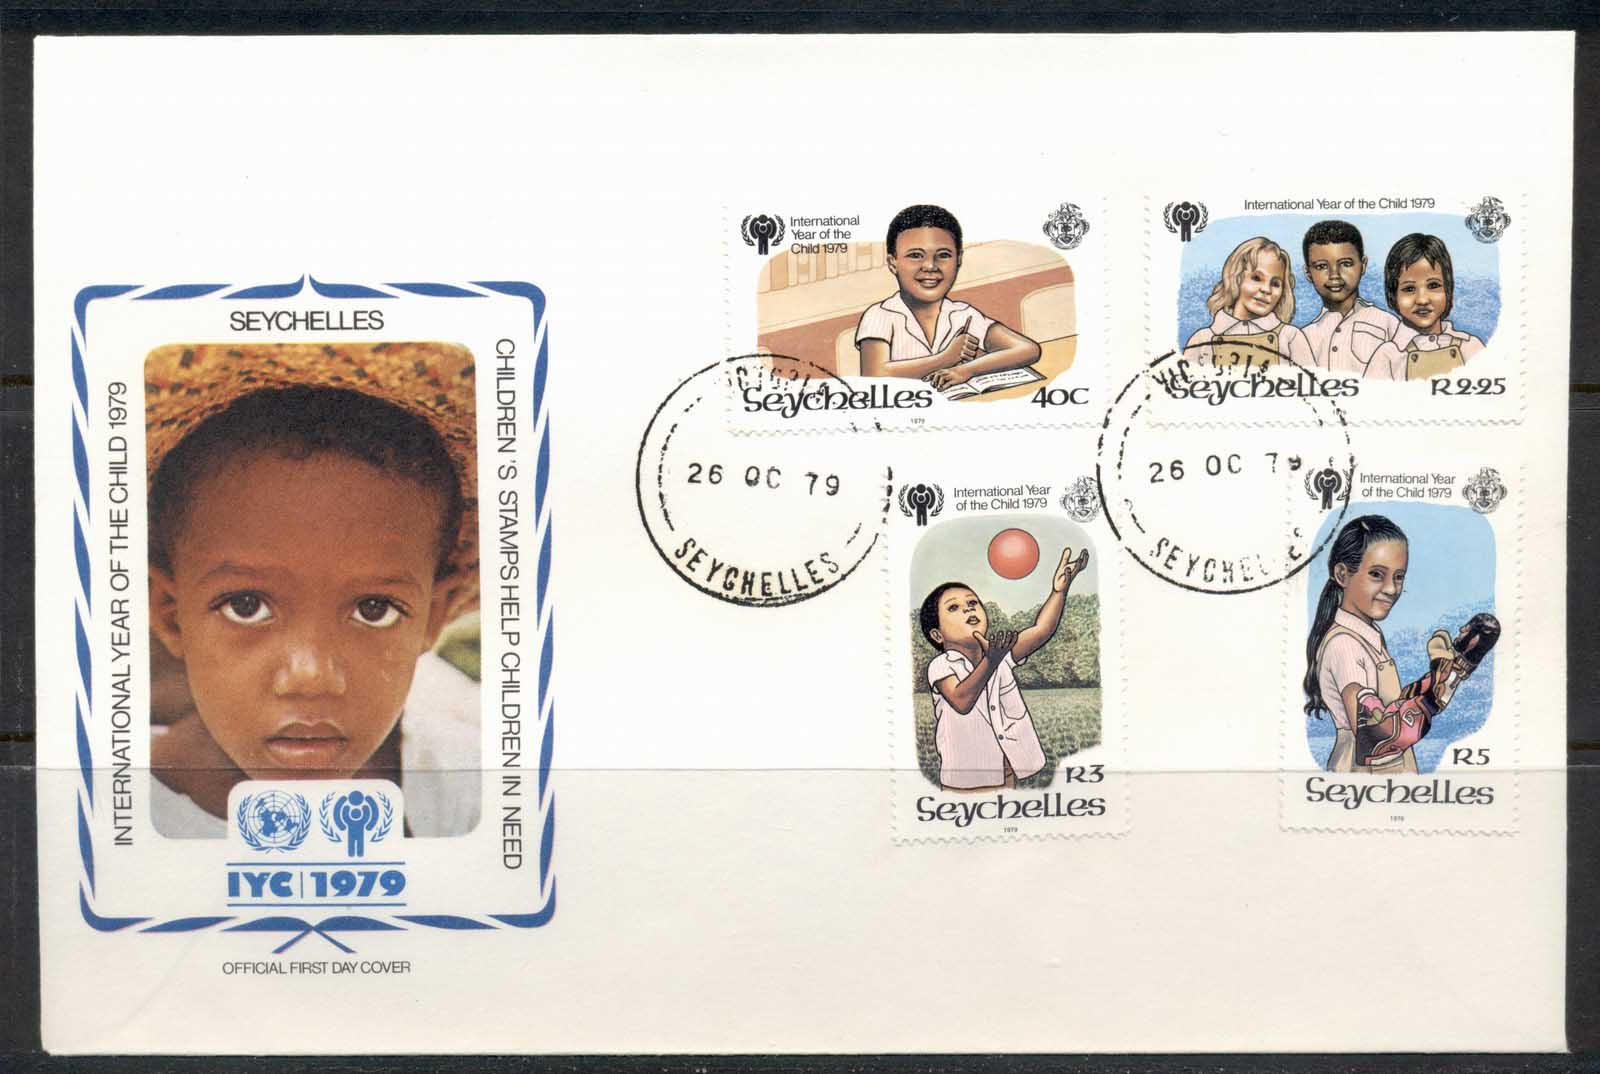 Seychelles 1979 IYC International year of the Child FDC